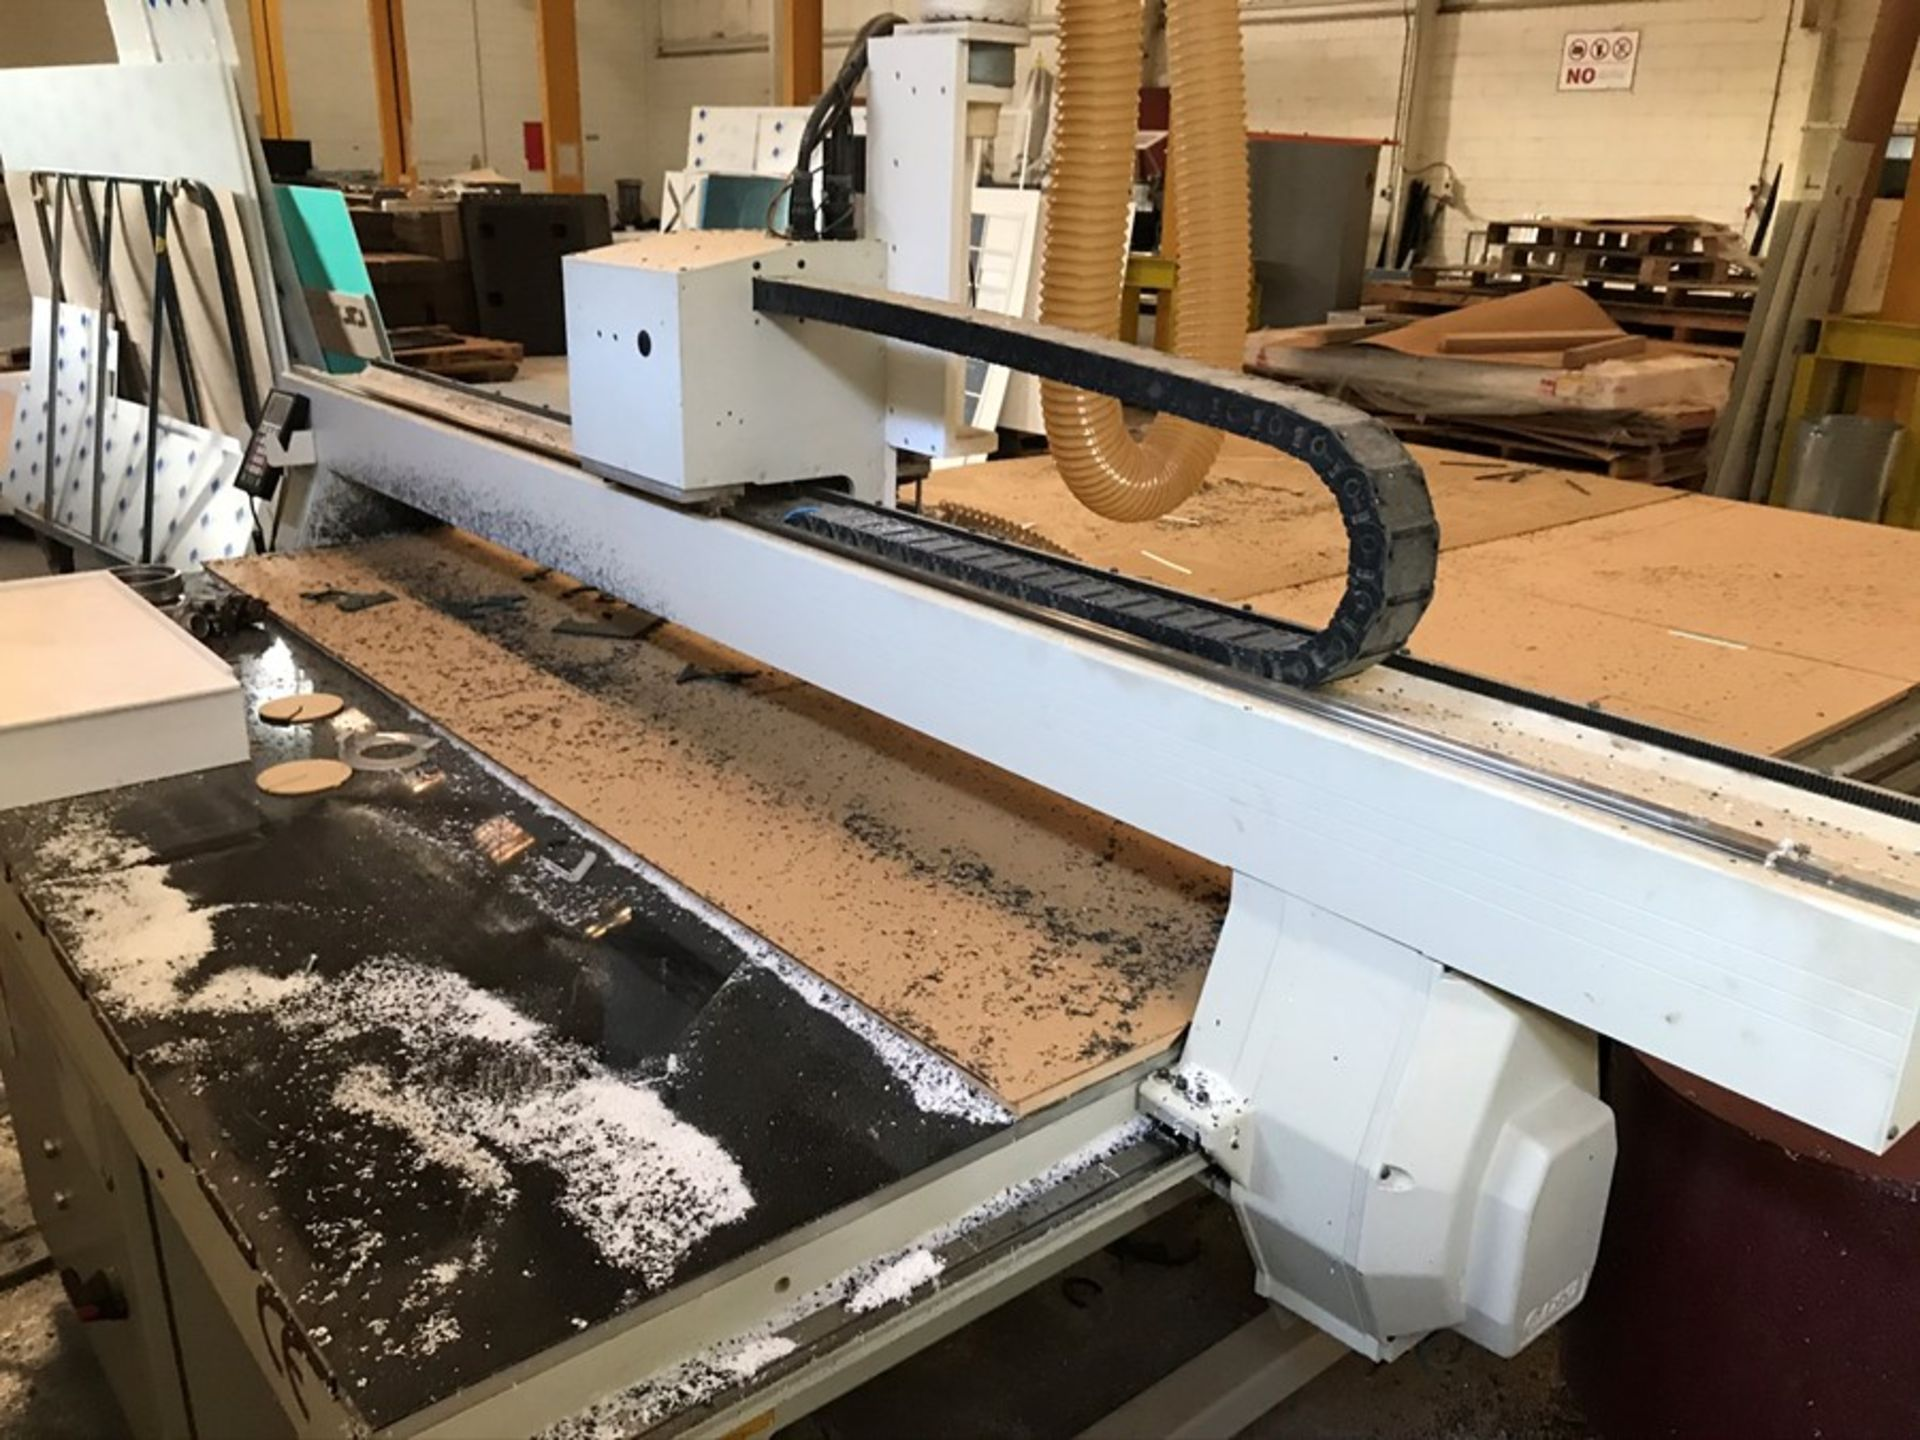 AXYZ 6010 ATC 7G CNC router (2015) - Image 9 of 20